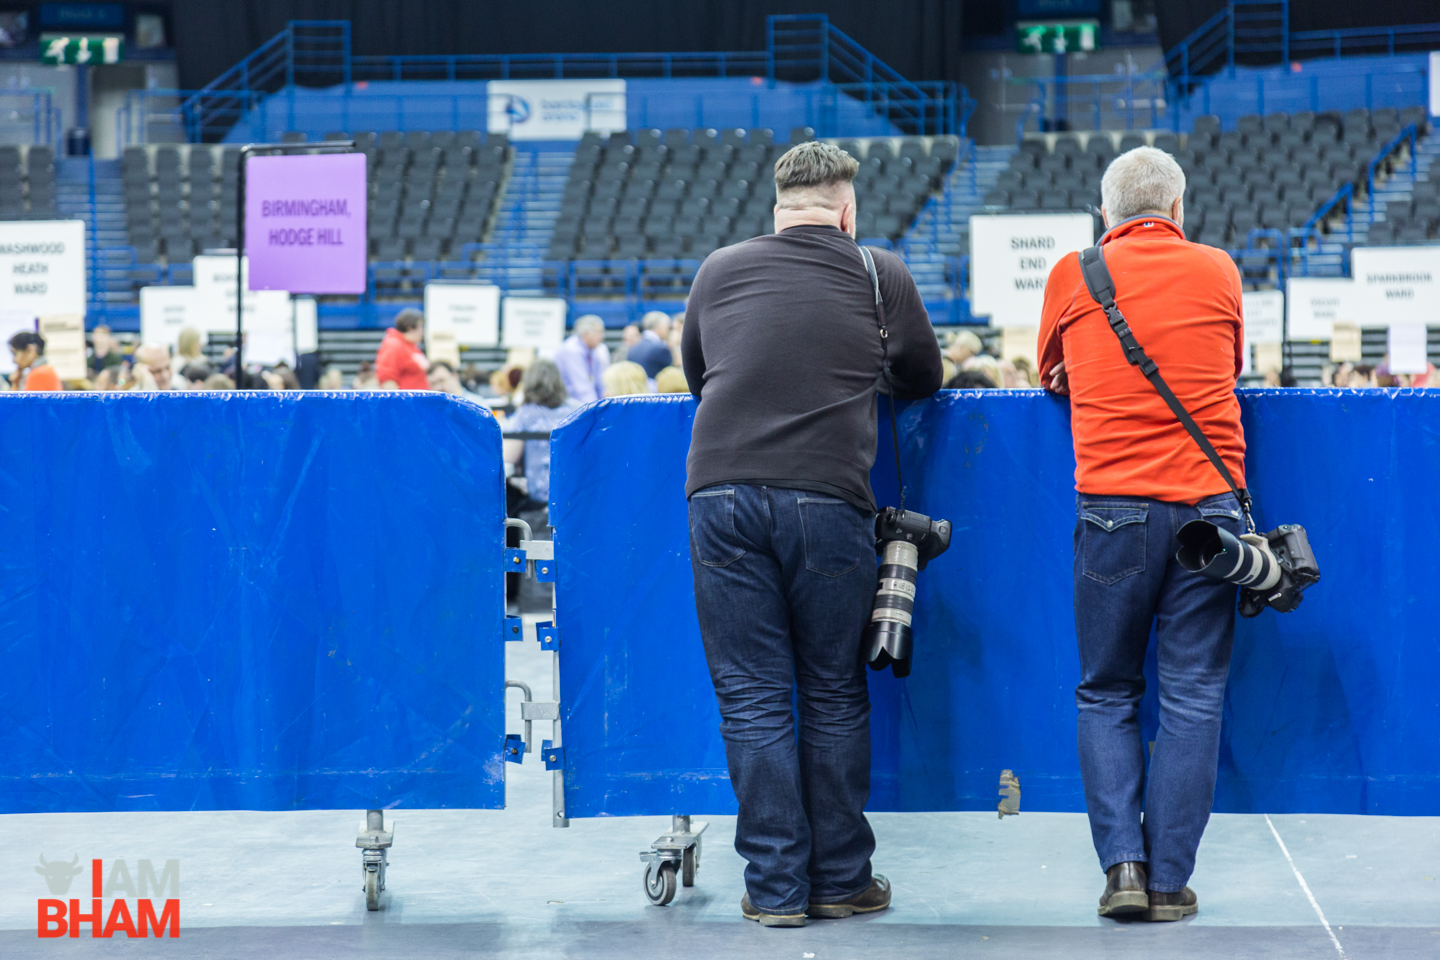 Two men watch the West Midlands Mayoral Election count in Birmingham